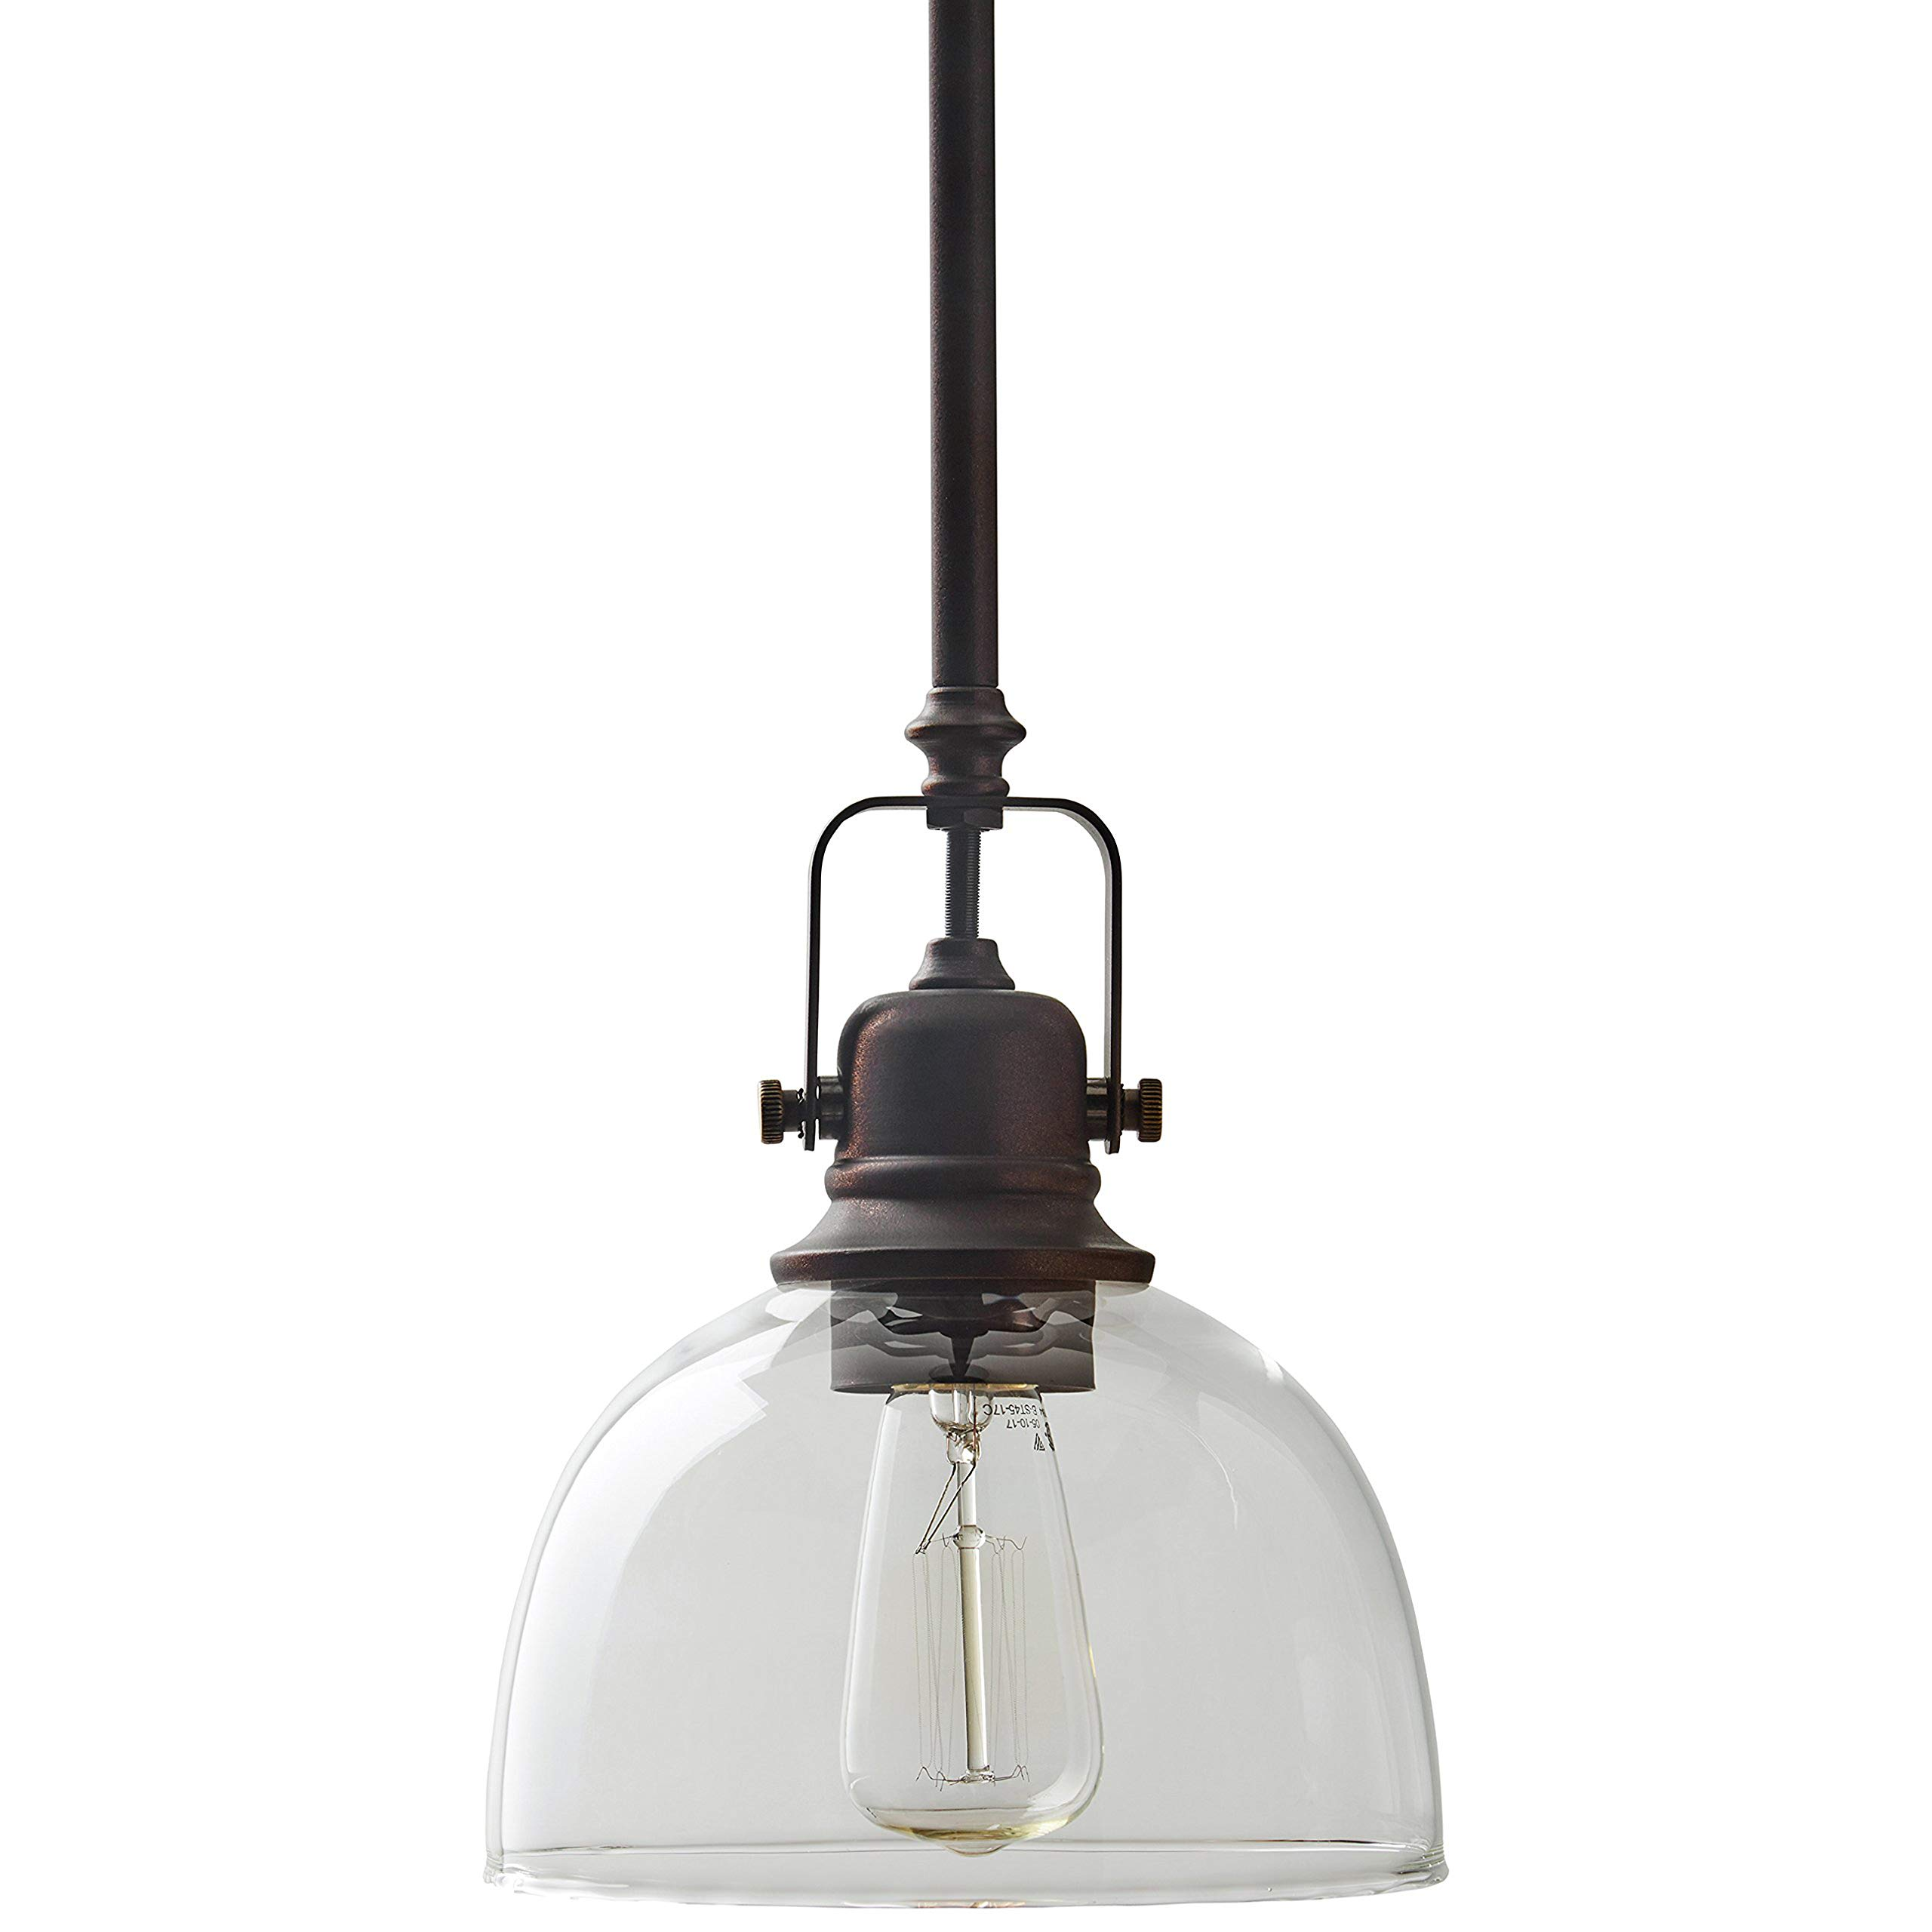 Stone & Beam Vintage Ceiling Pendant Lighting Fixture With Clear Glass Shade - 7 x 7 x 17.25 Inches, 11.75 - 59.25 Inch Cord, Oil Rubbed Bronze